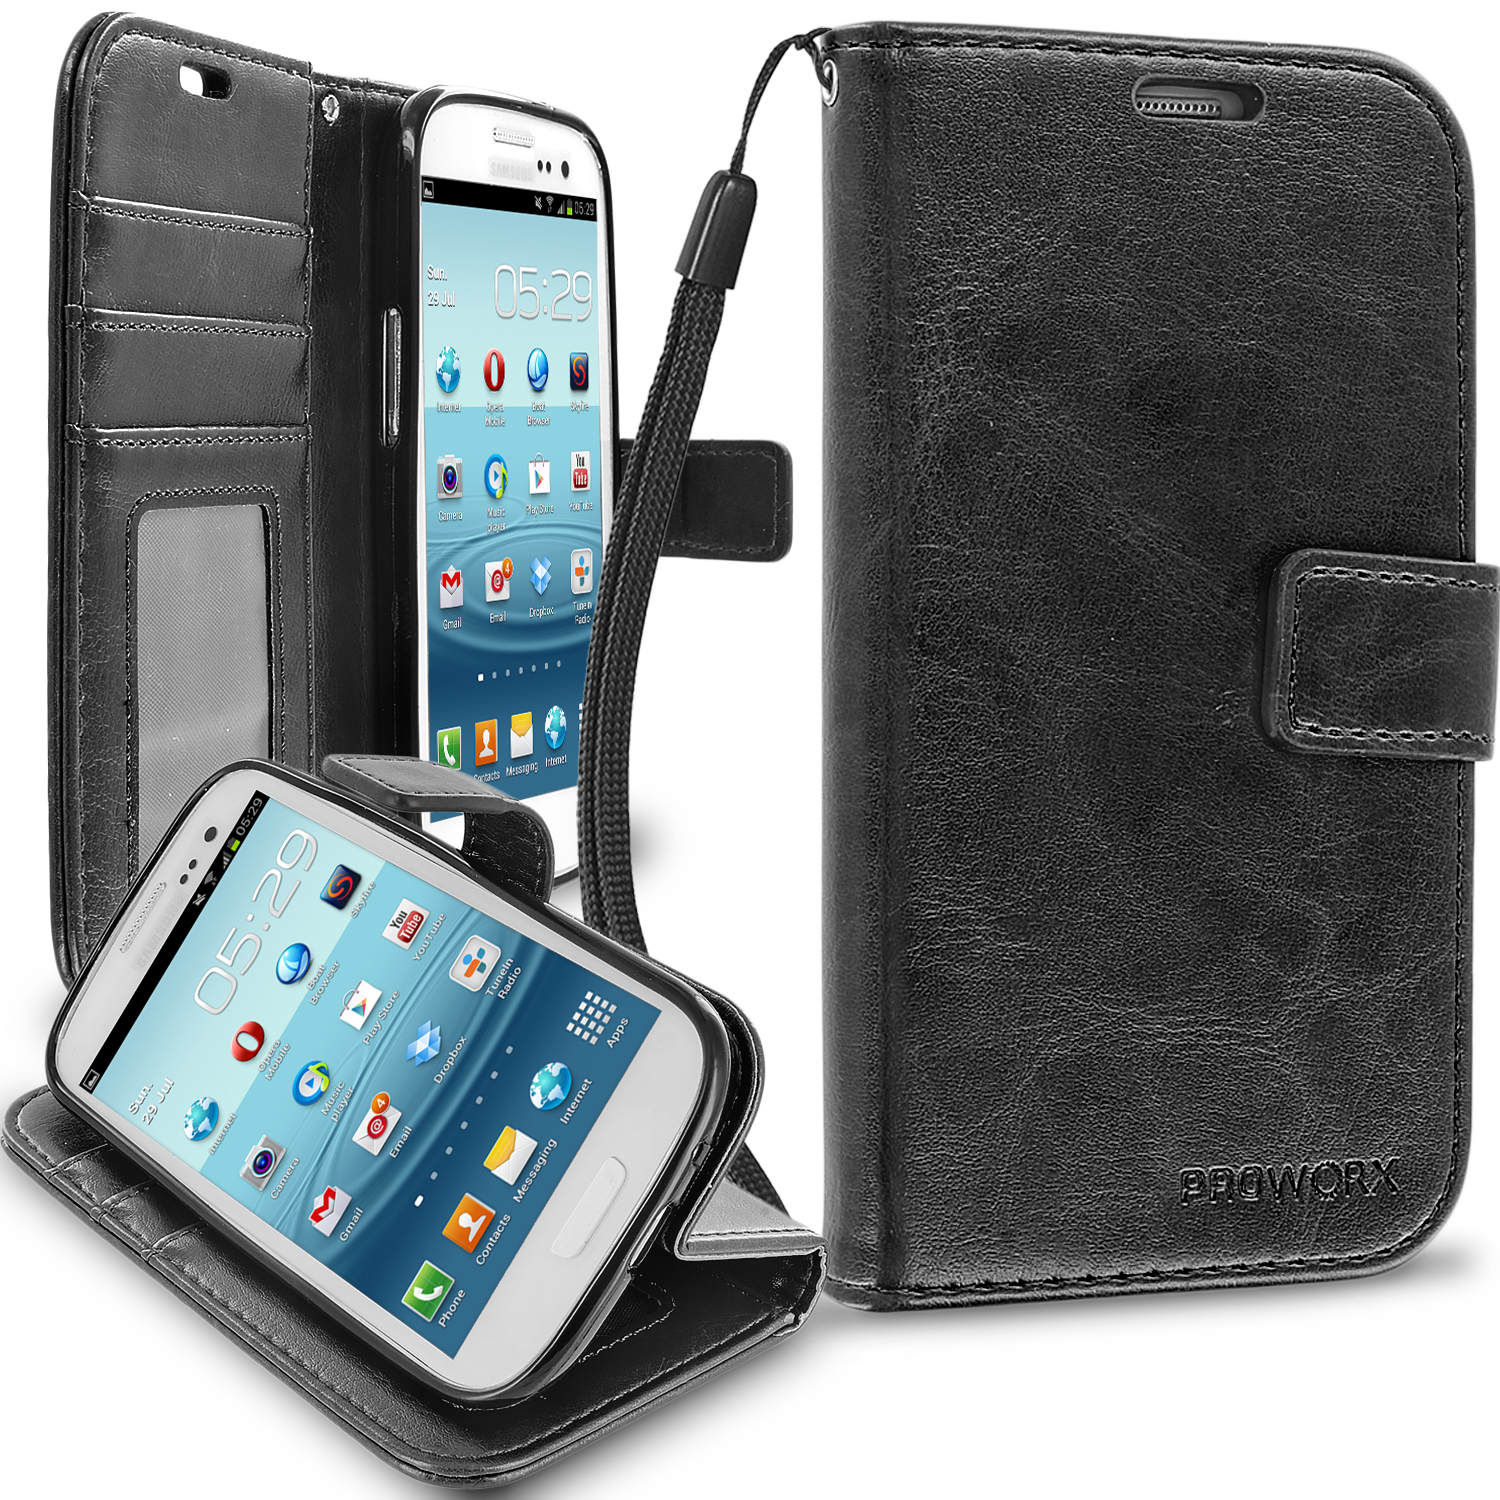 Samsung Galaxy S3 Black ProWorx Wallet Case Luxury PU Leather Case Cover With Card Slots & Stand